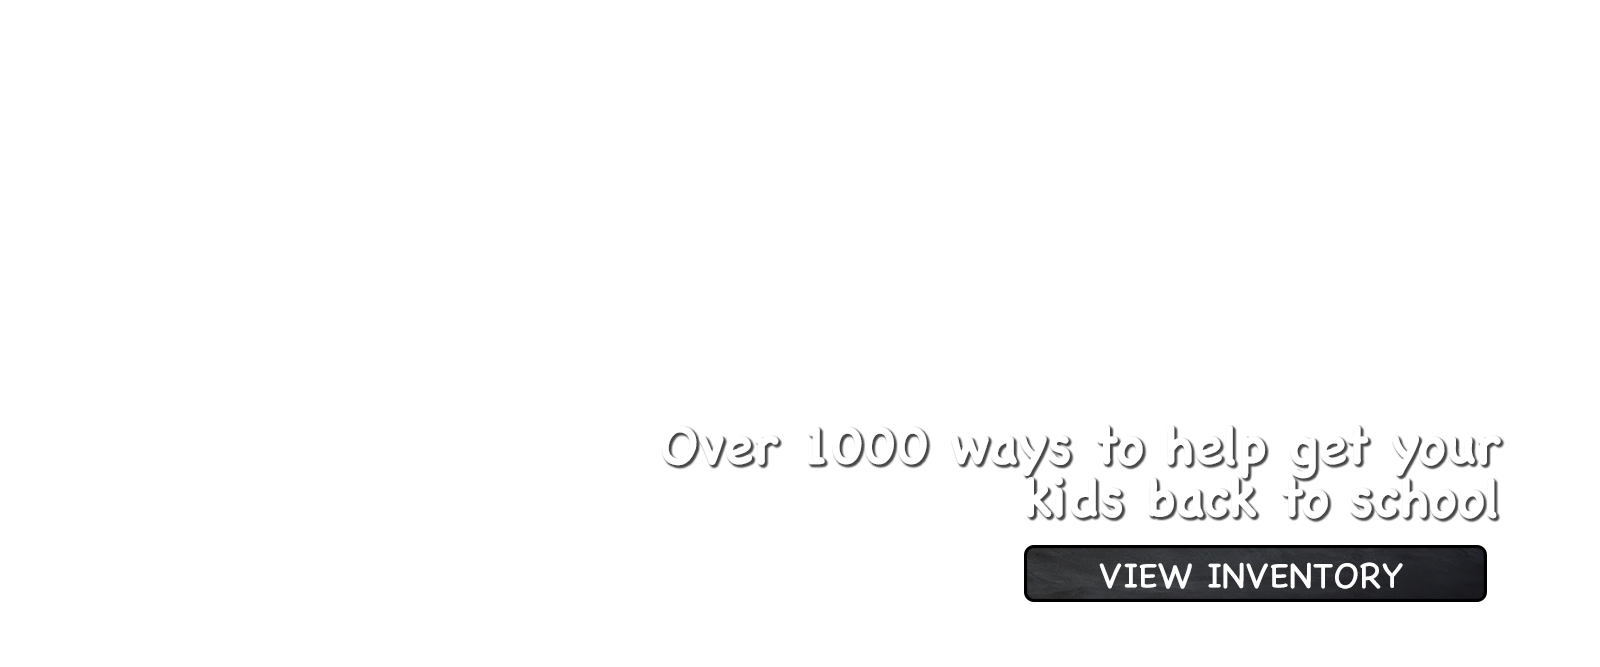 1000 ways to help get your kids back to school on time